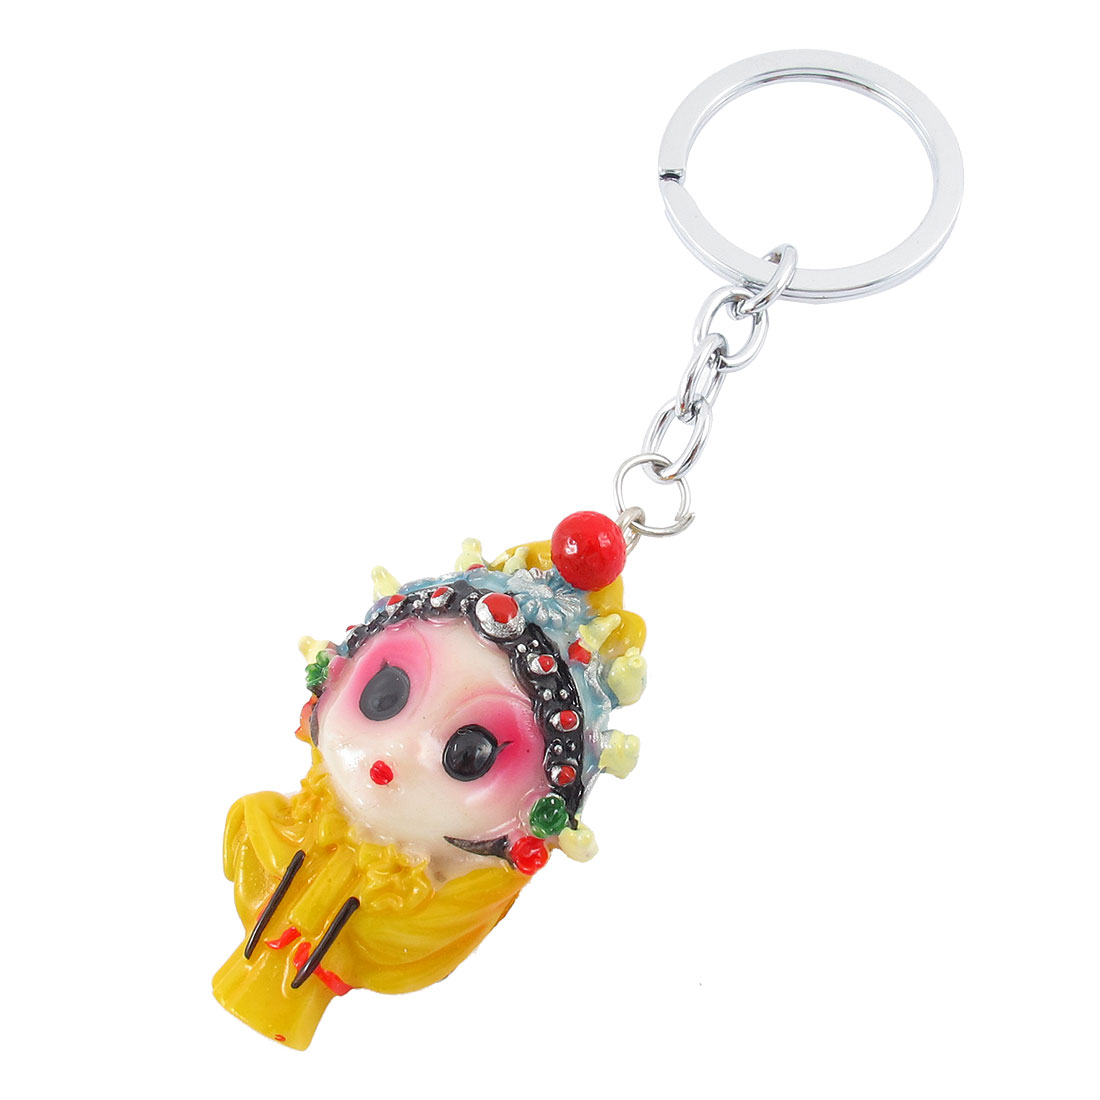 11cm Long Woman Character Peking Opera Facial Makeup Pendant Keychain Yellow